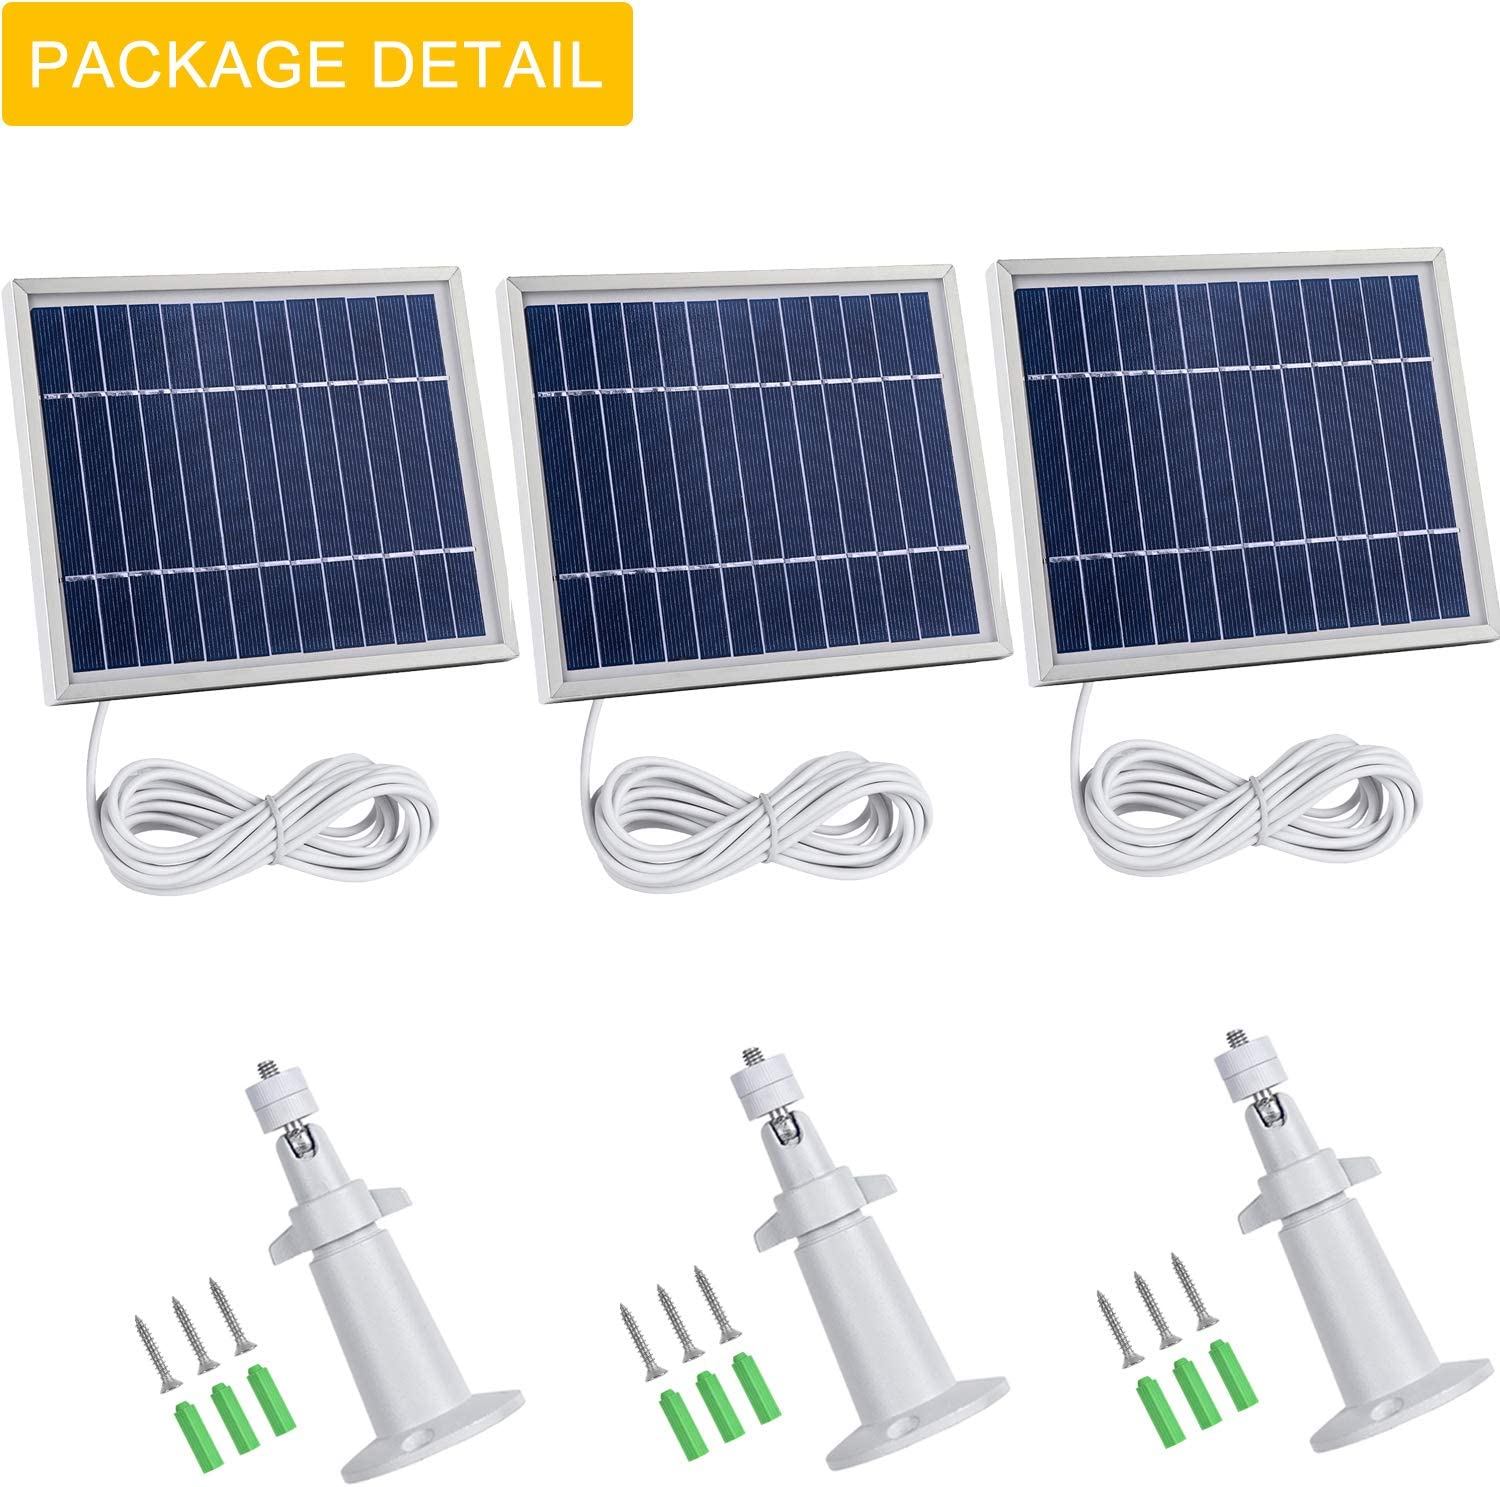 11.8Ft Outdoor Power Charging Cable and Adjustable Mount/,Not for Arlo Ultra and Arlo Pro3 iTODOS 3 Pack Solar Panel Compatible with Arlo Pro 2 Silver